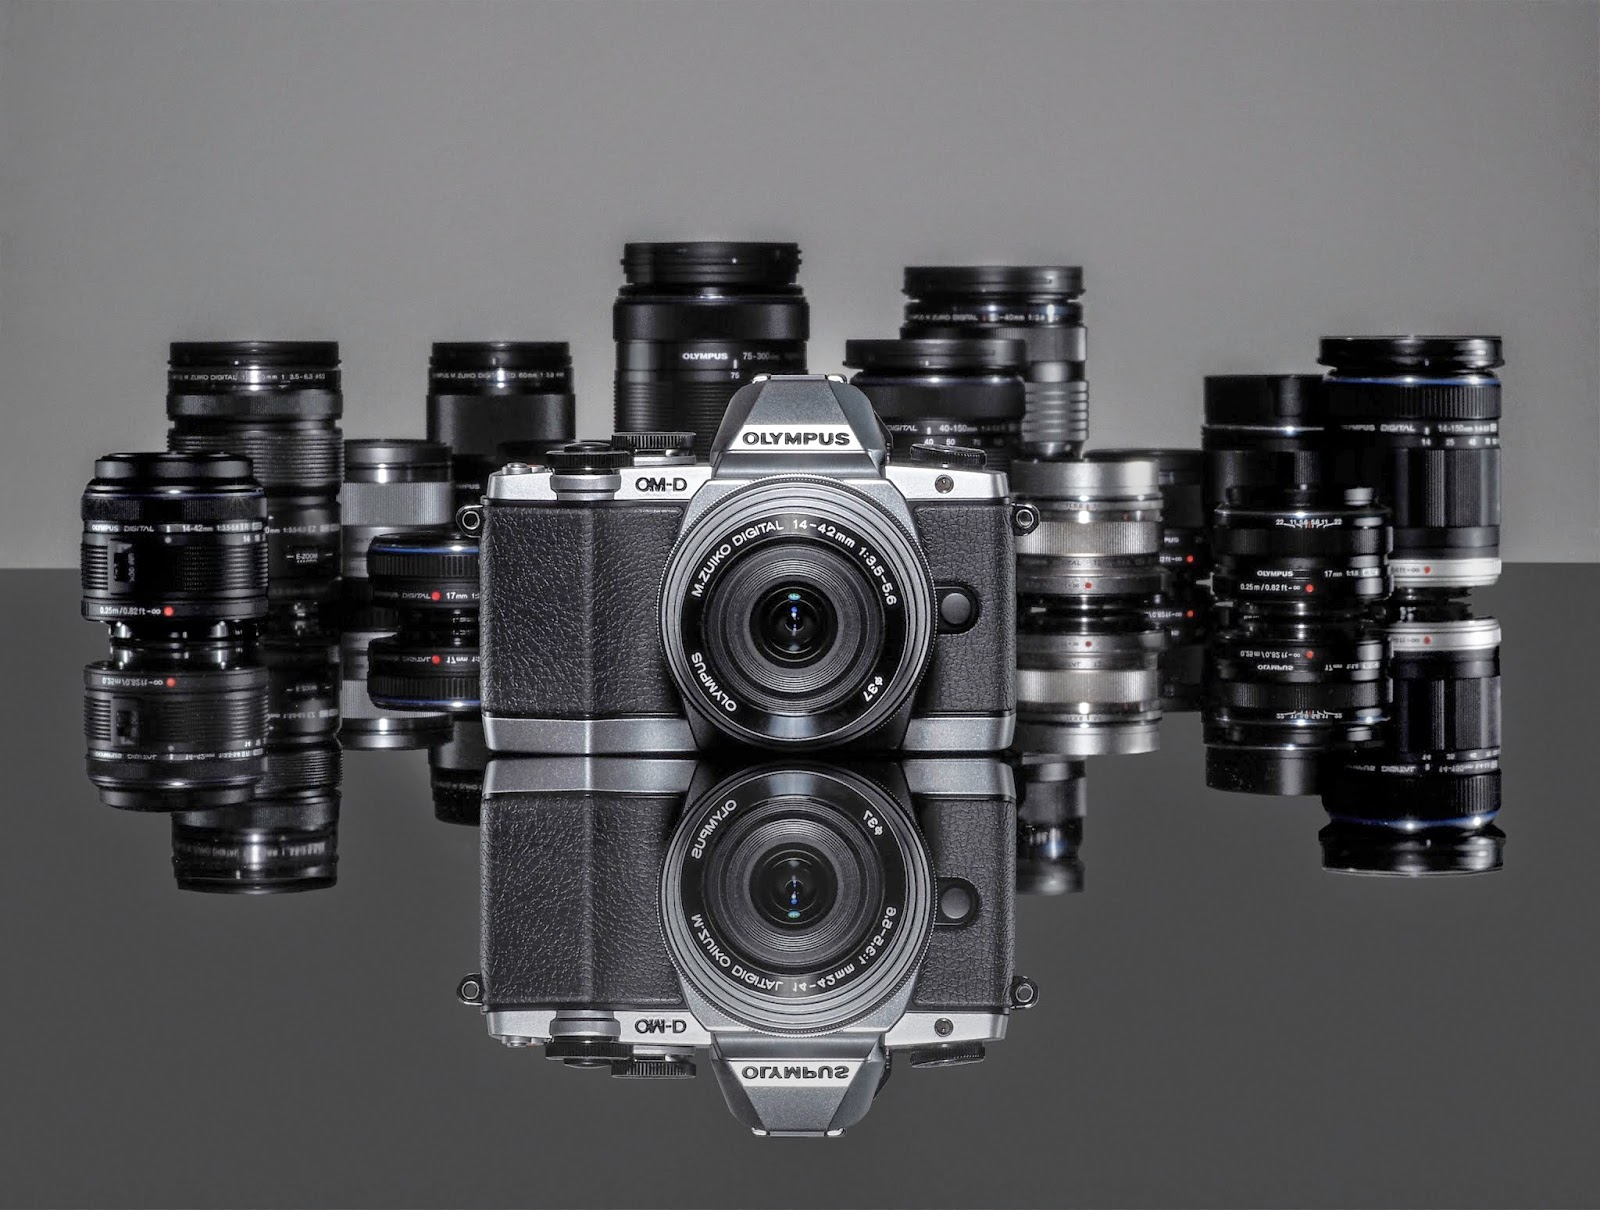 Fujifilm X-T1 vs Olympus OM-D EM10, Fujifilm XT-1, Olympus OM-D EM10, new mirrorless camera, Full HD,